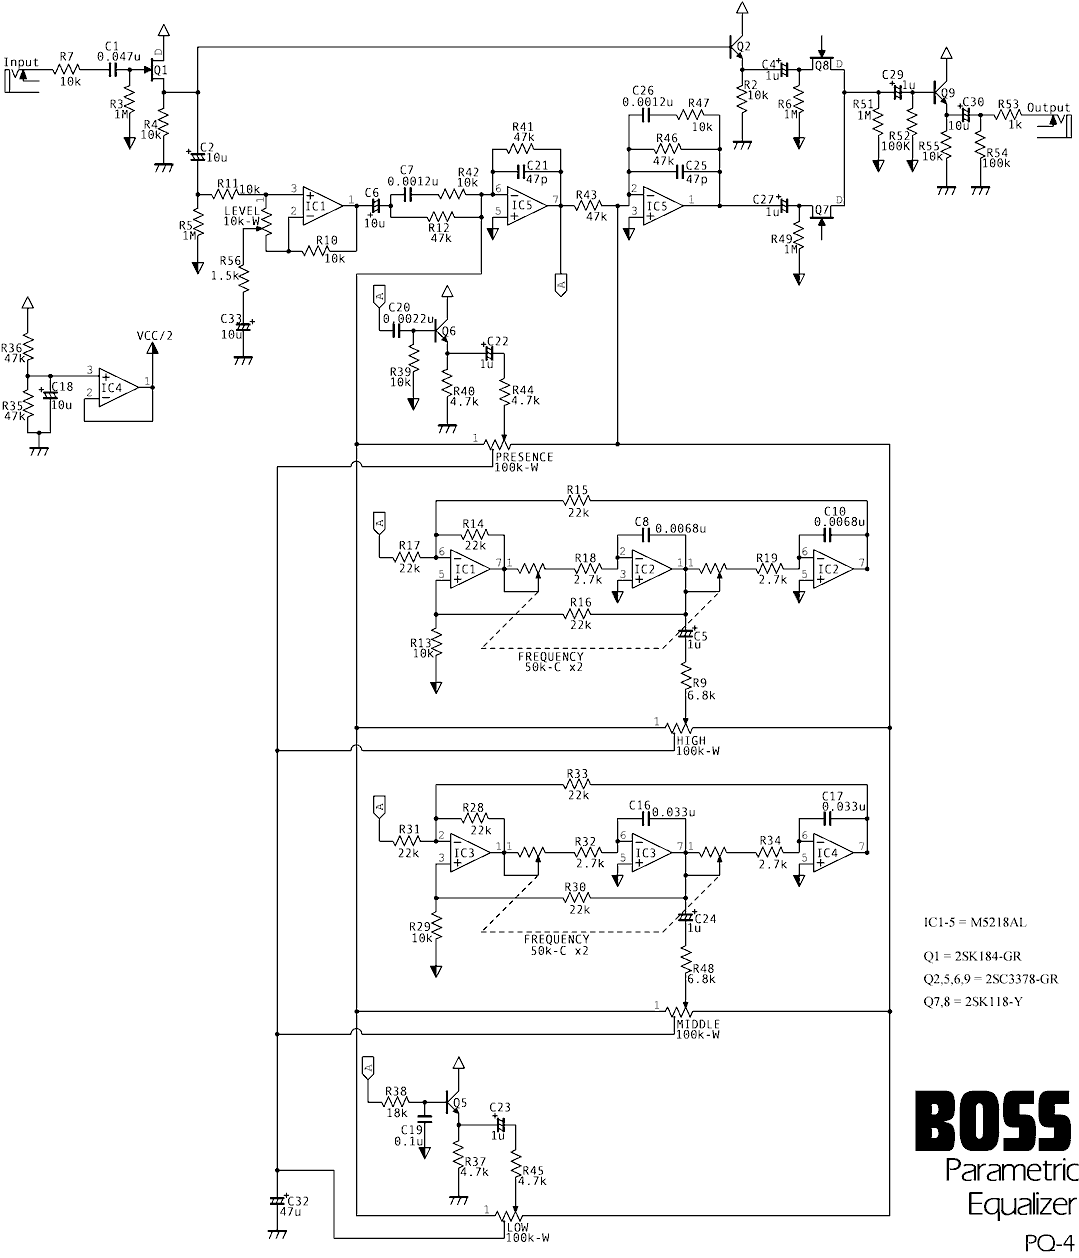 Boss PQ-4 Parametric Equalizer schematic needed